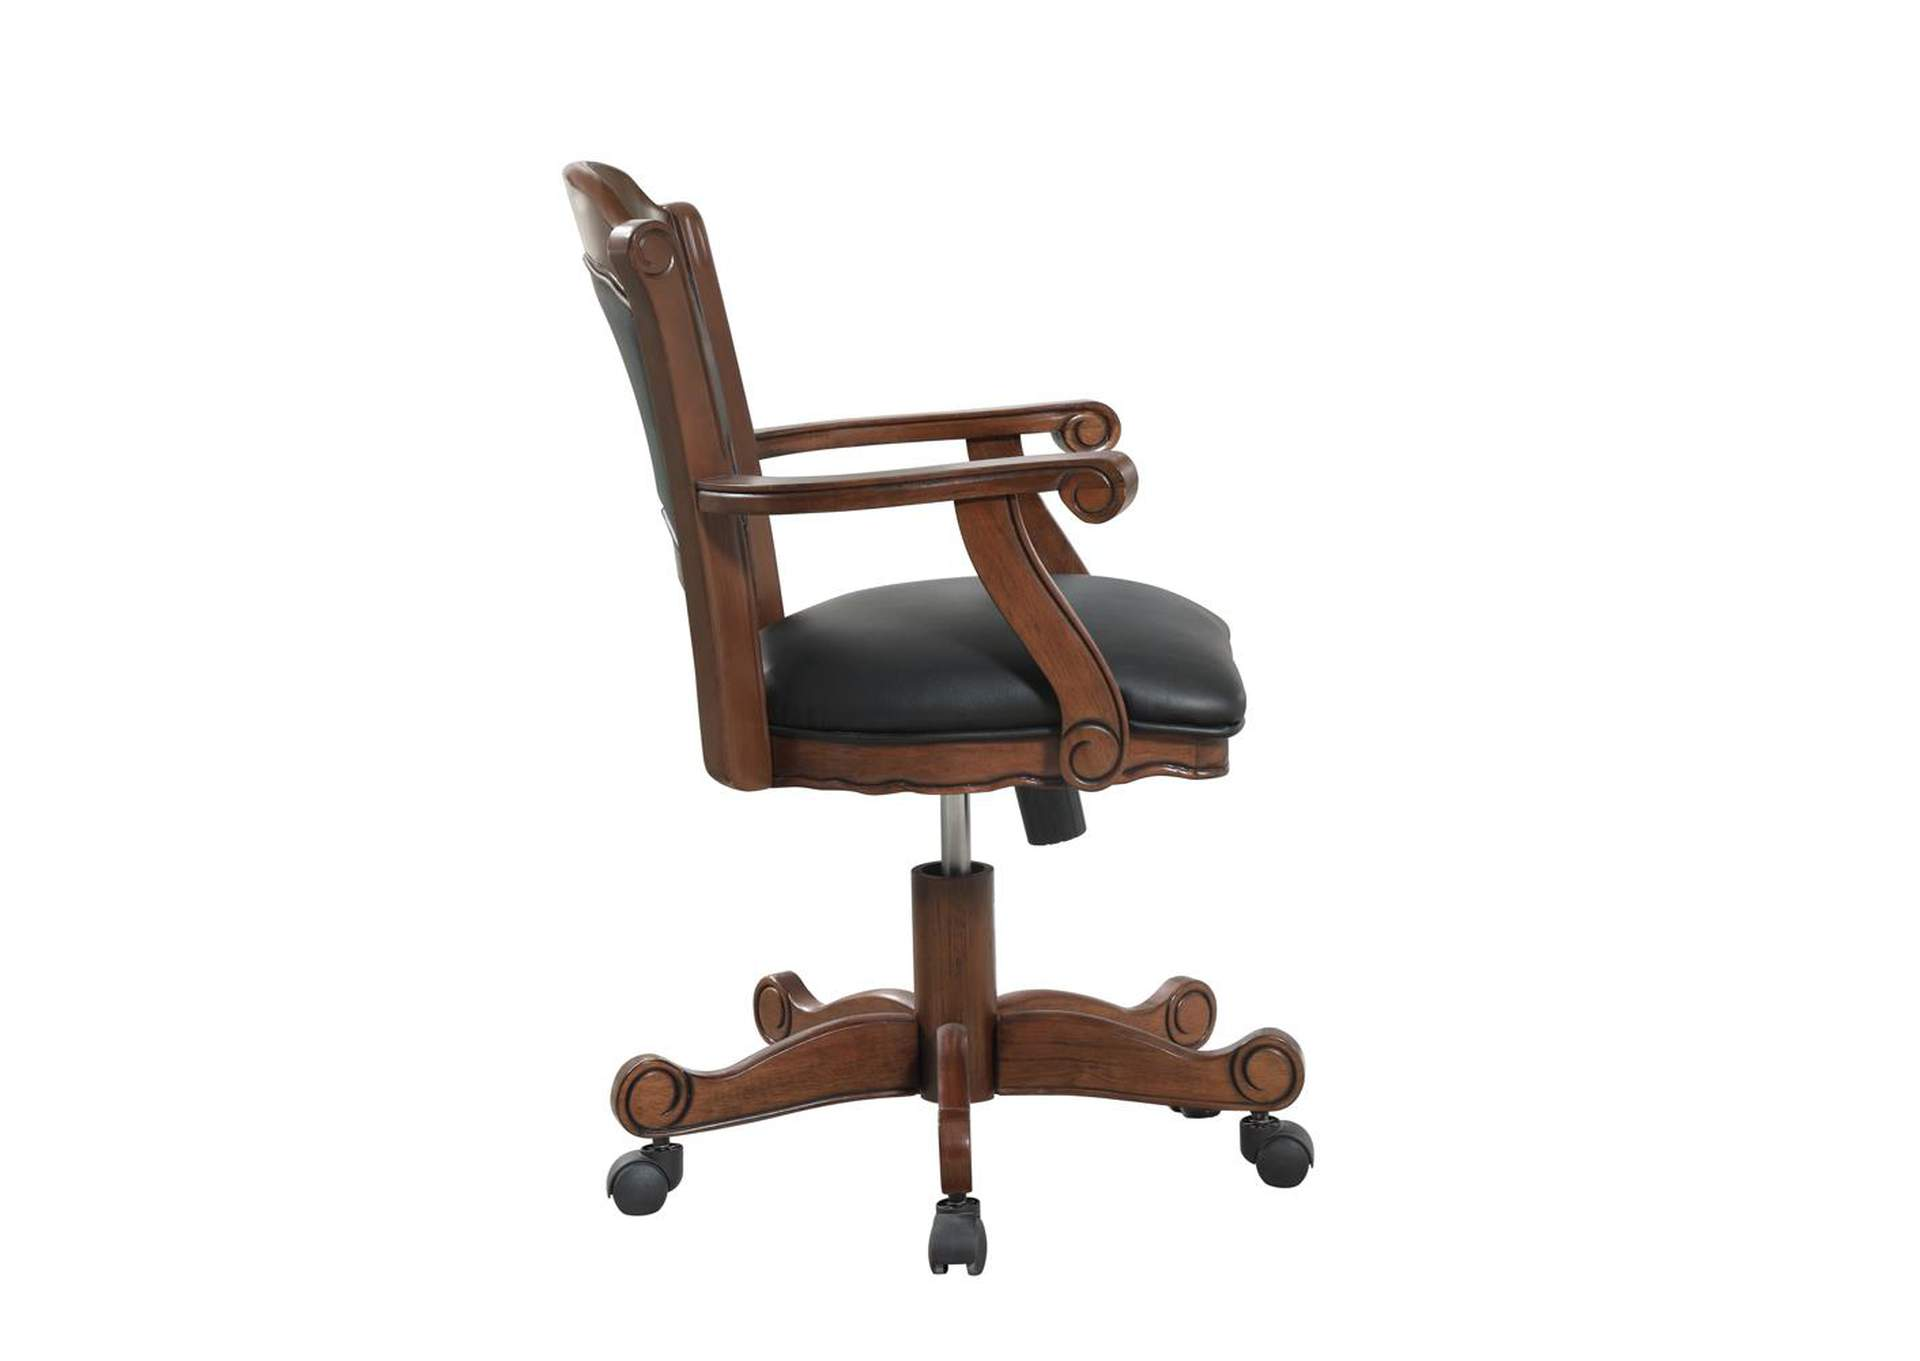 Casual Black and Tobacco Upholstered Game Chair,Coaster Furniture